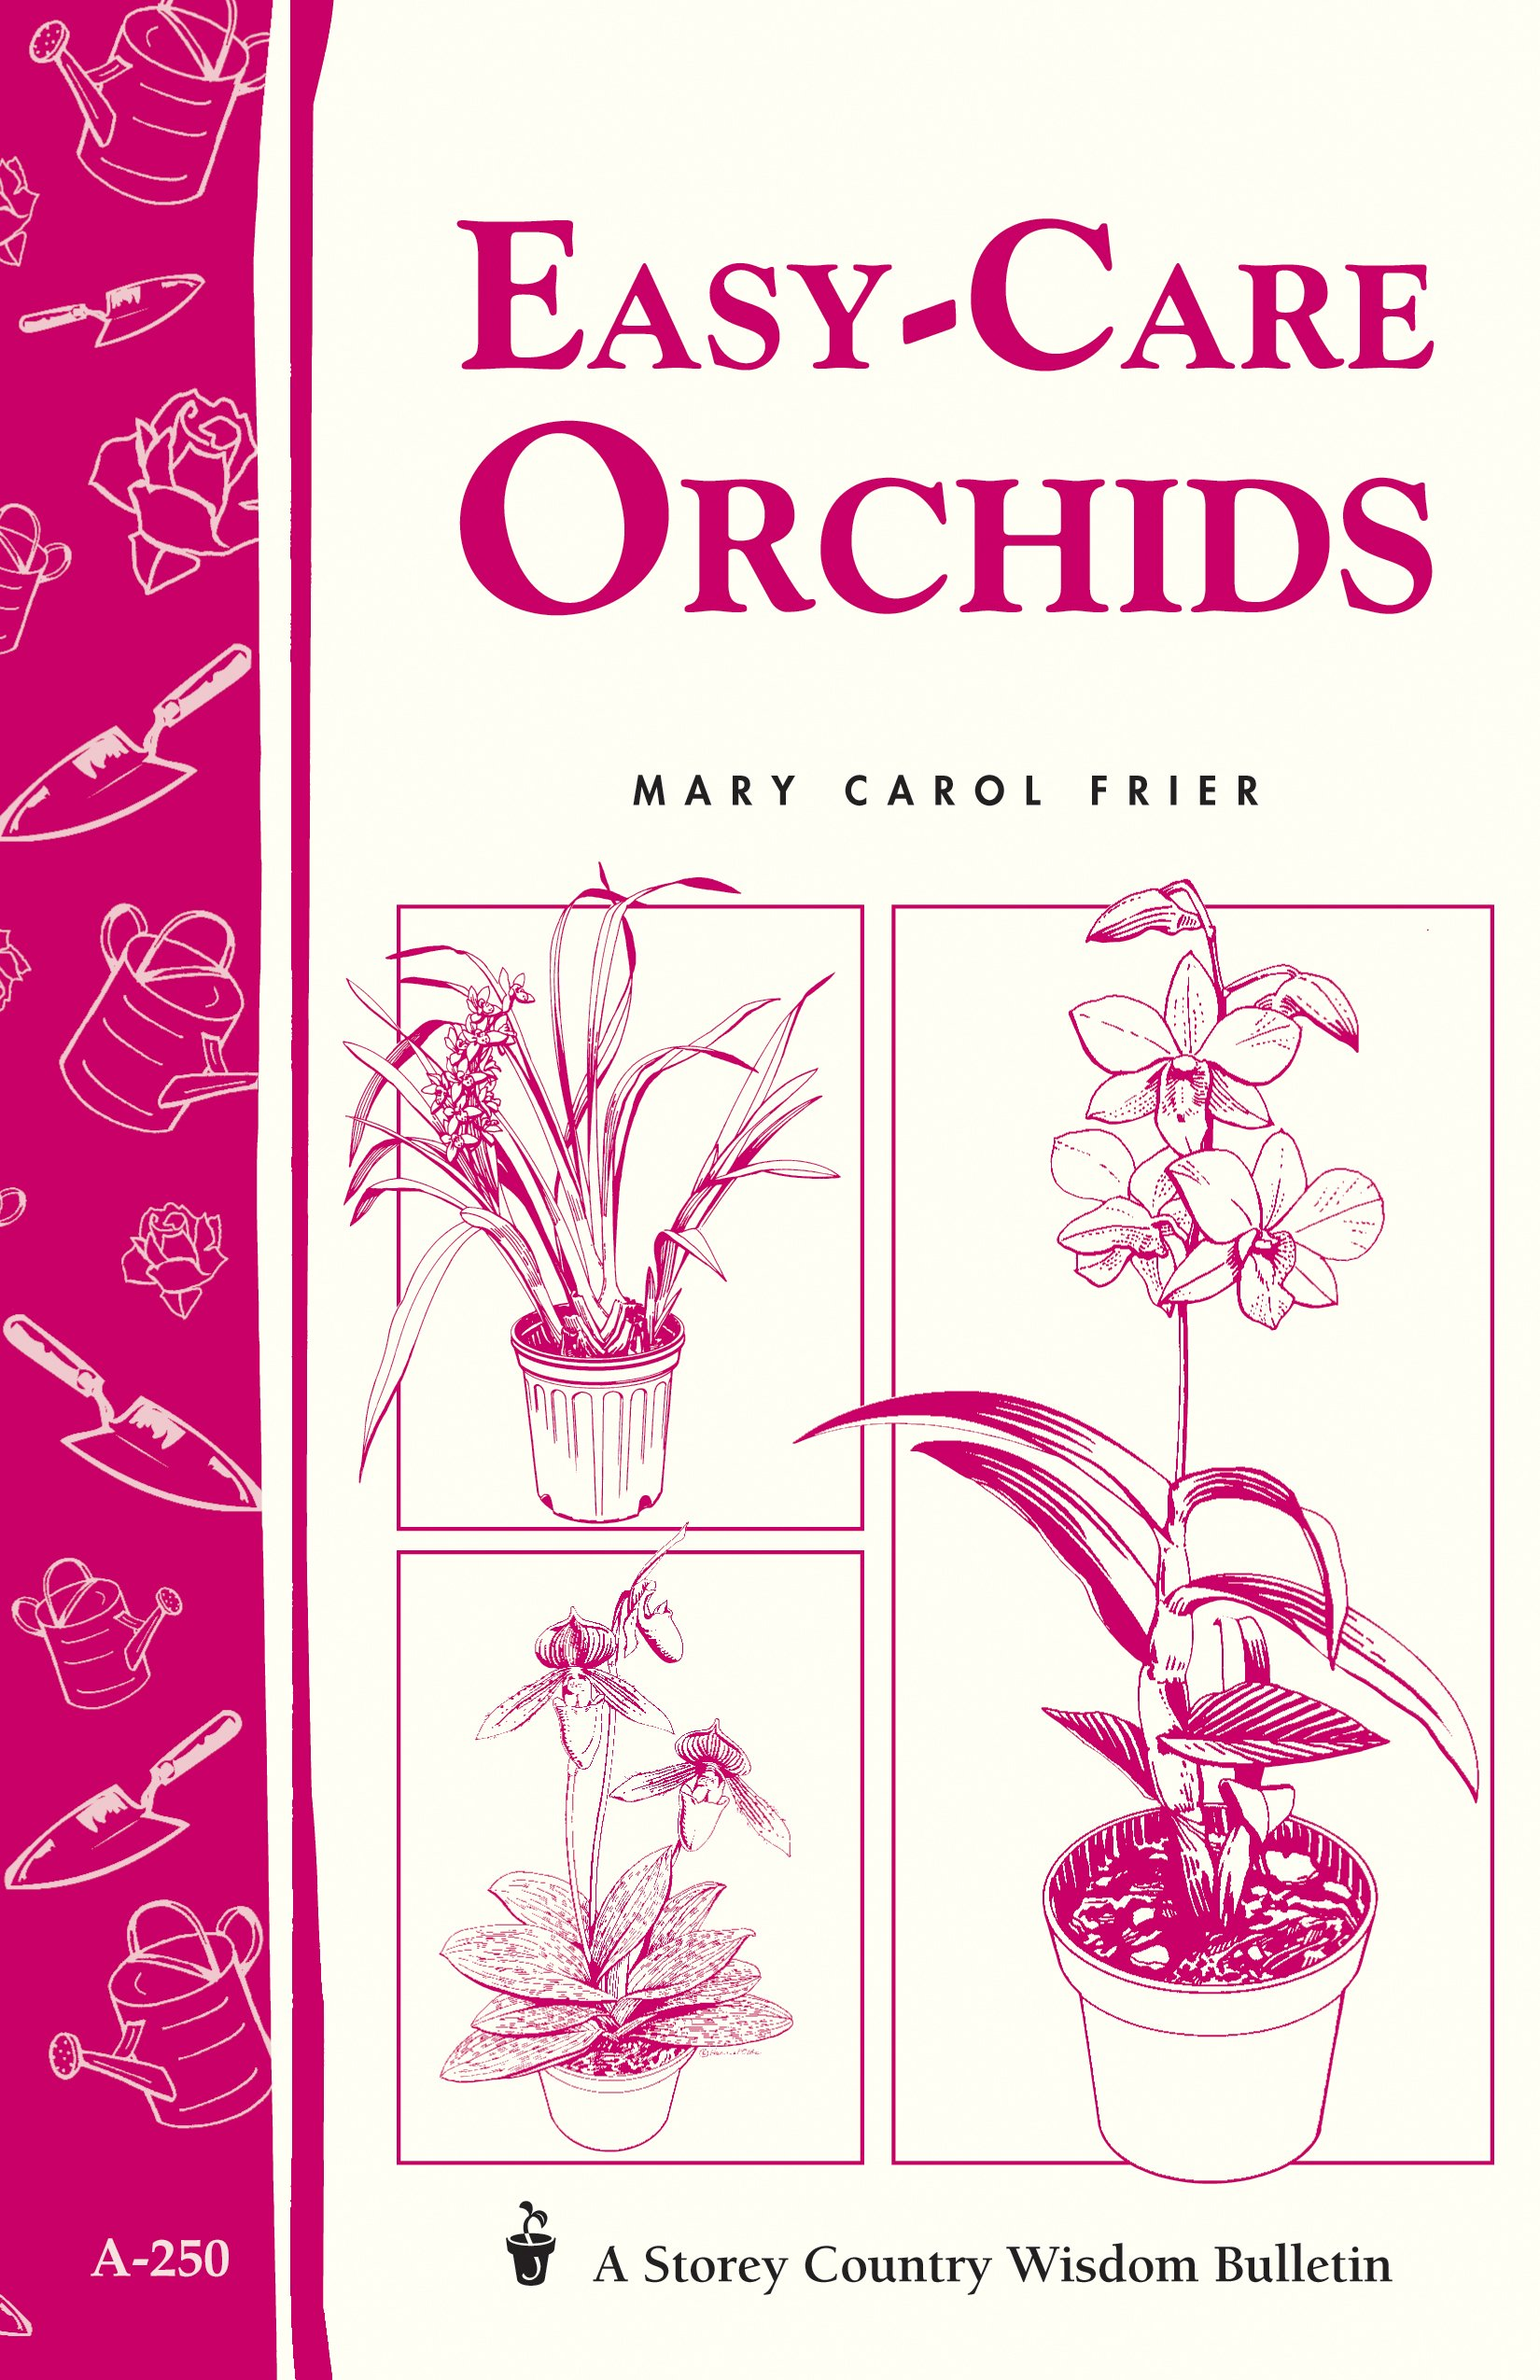 Easy-Care Orchids Storeys Country Wisdom Bulletin A-250